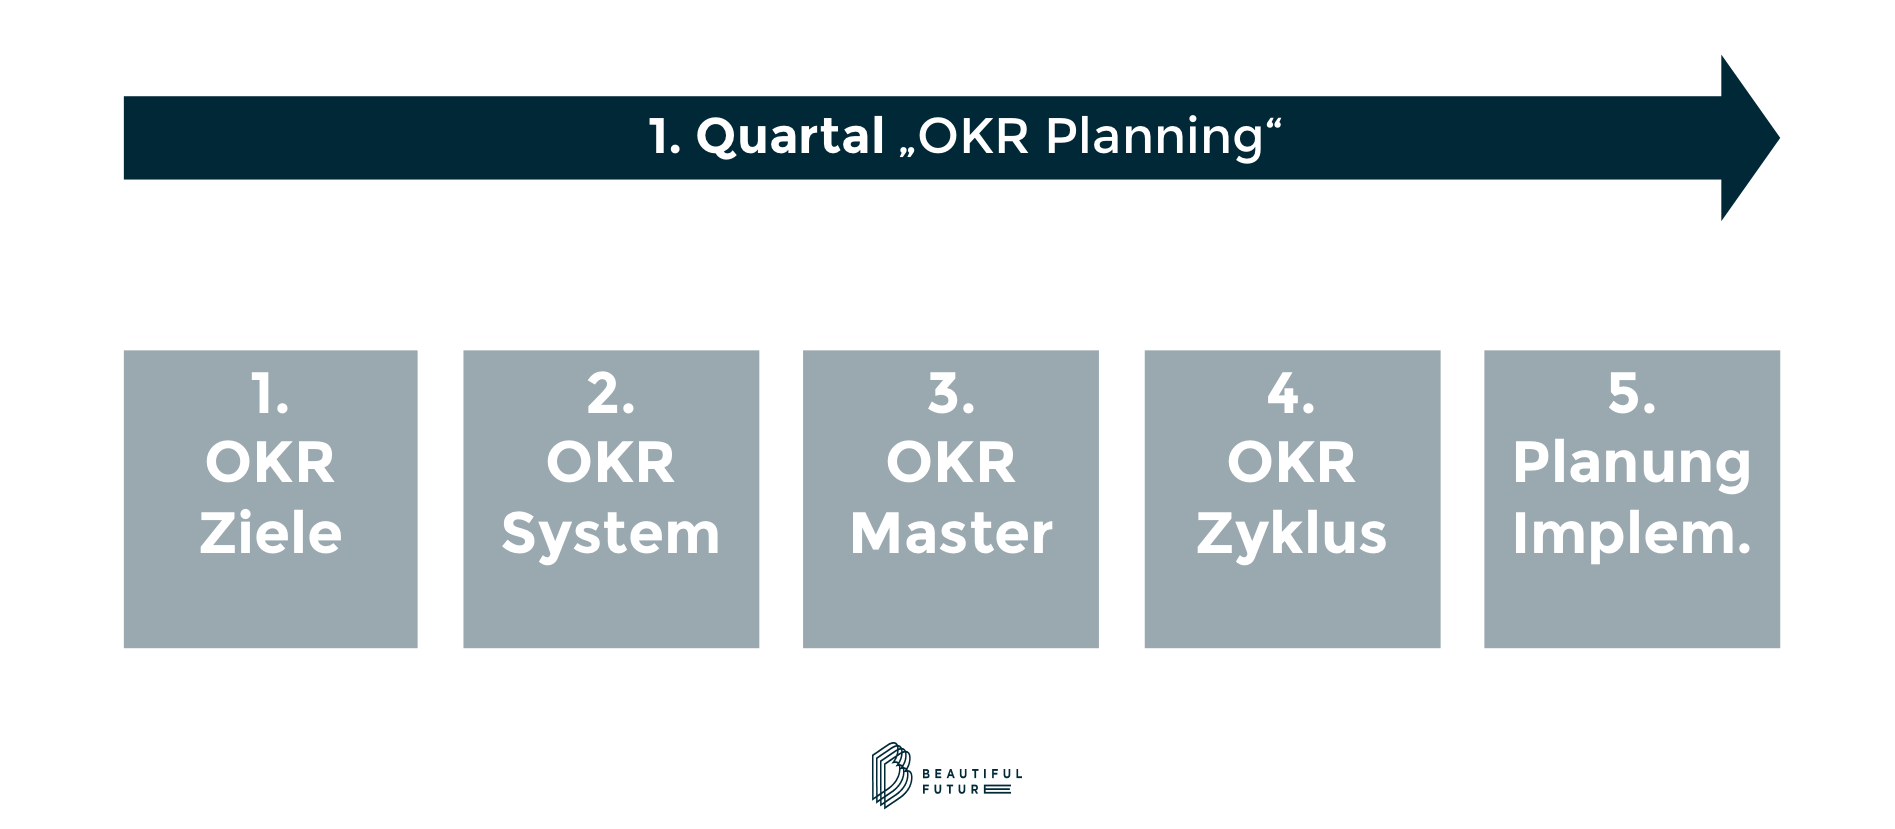 OKR Implementierung Planungsphase